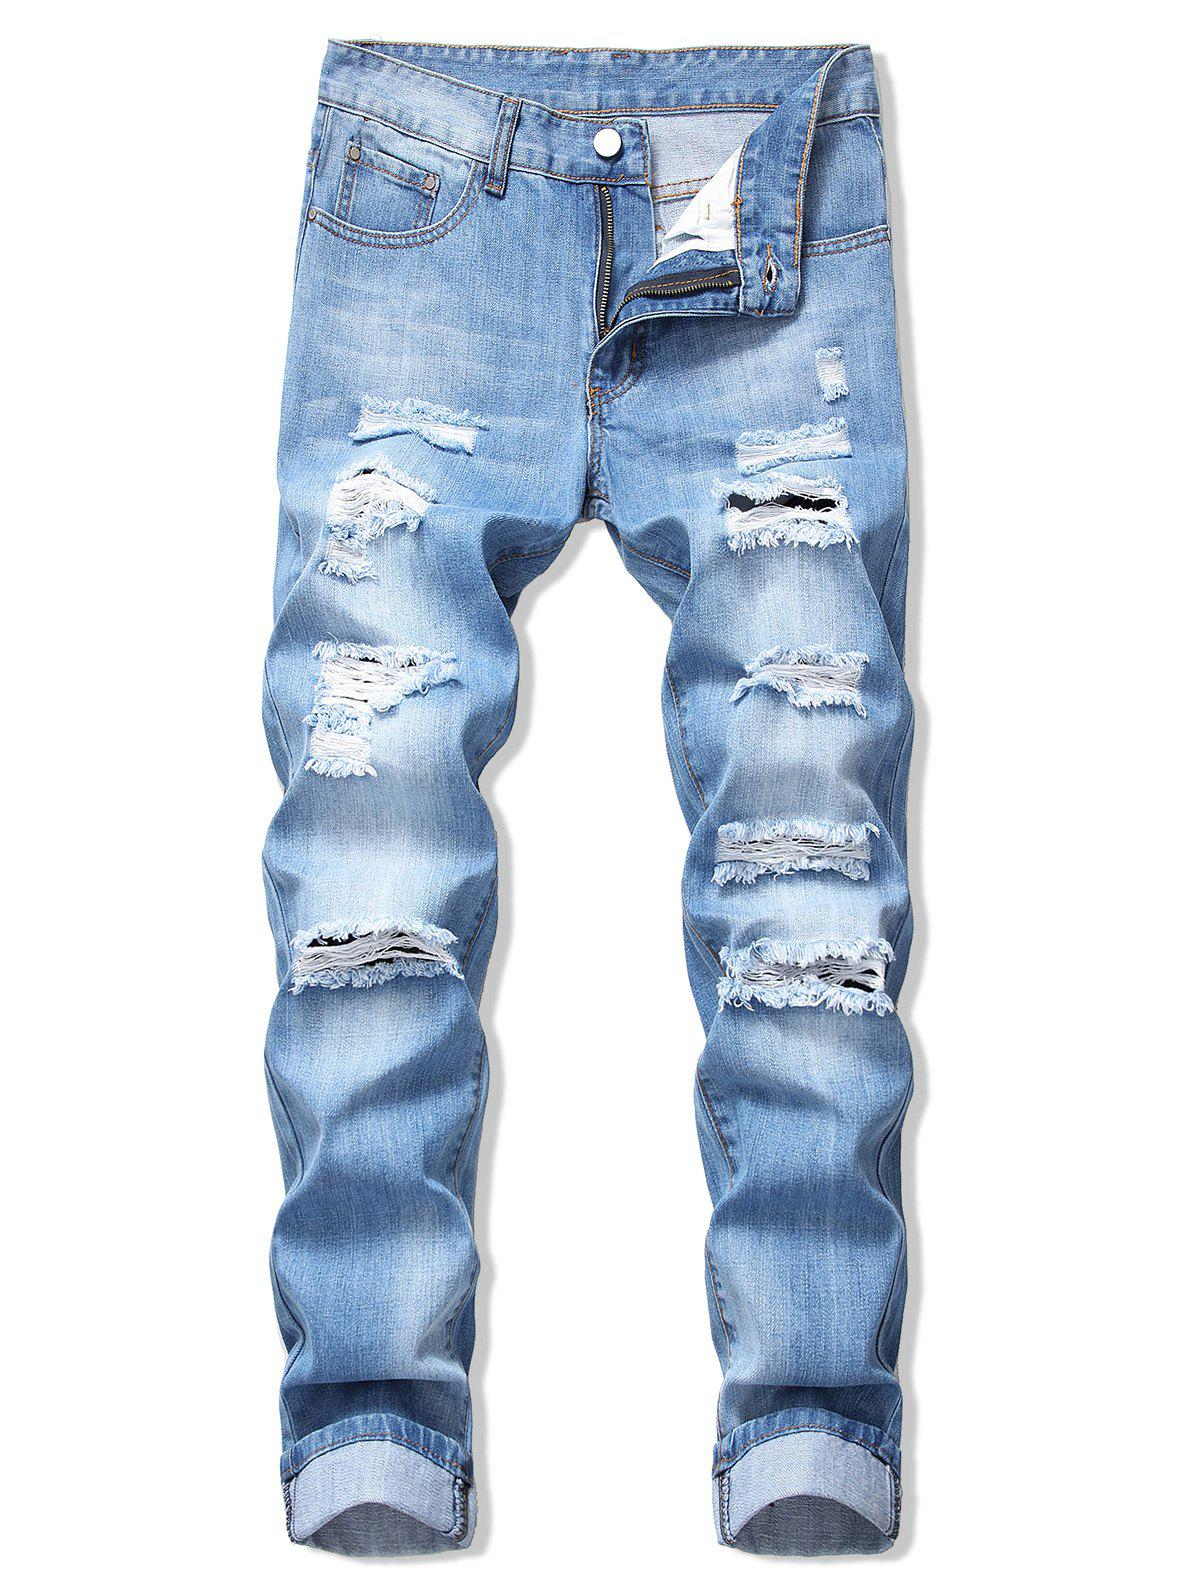 Destroy Wash Faded Long Straight Jeans - DENIM BLUE 40